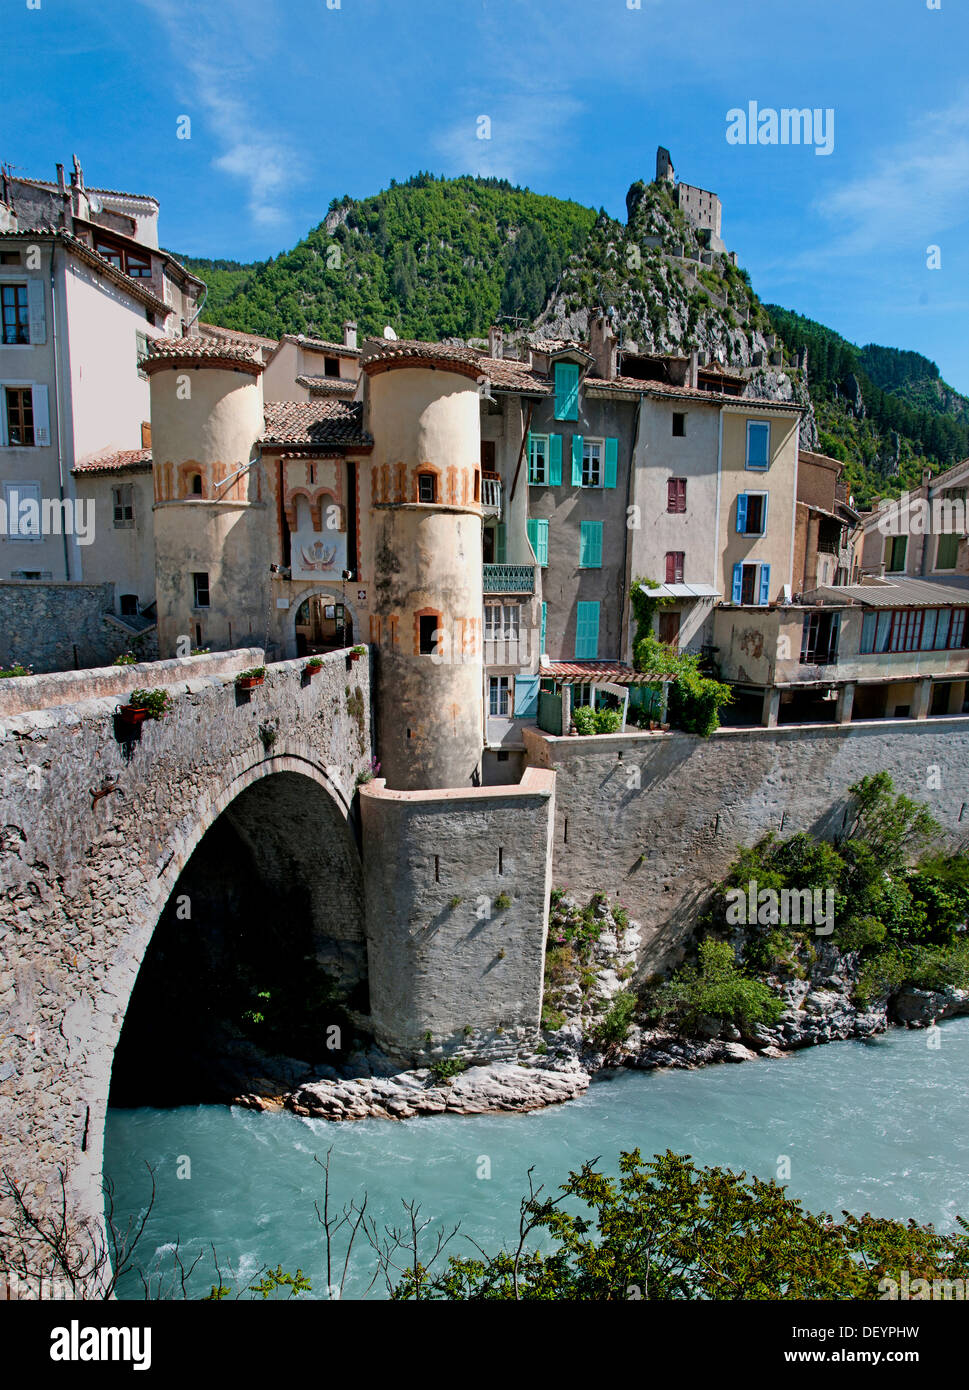 Entrevaux medieval city fortified by Vauban France Alpes de Haute Provence Citadel - Stock Image